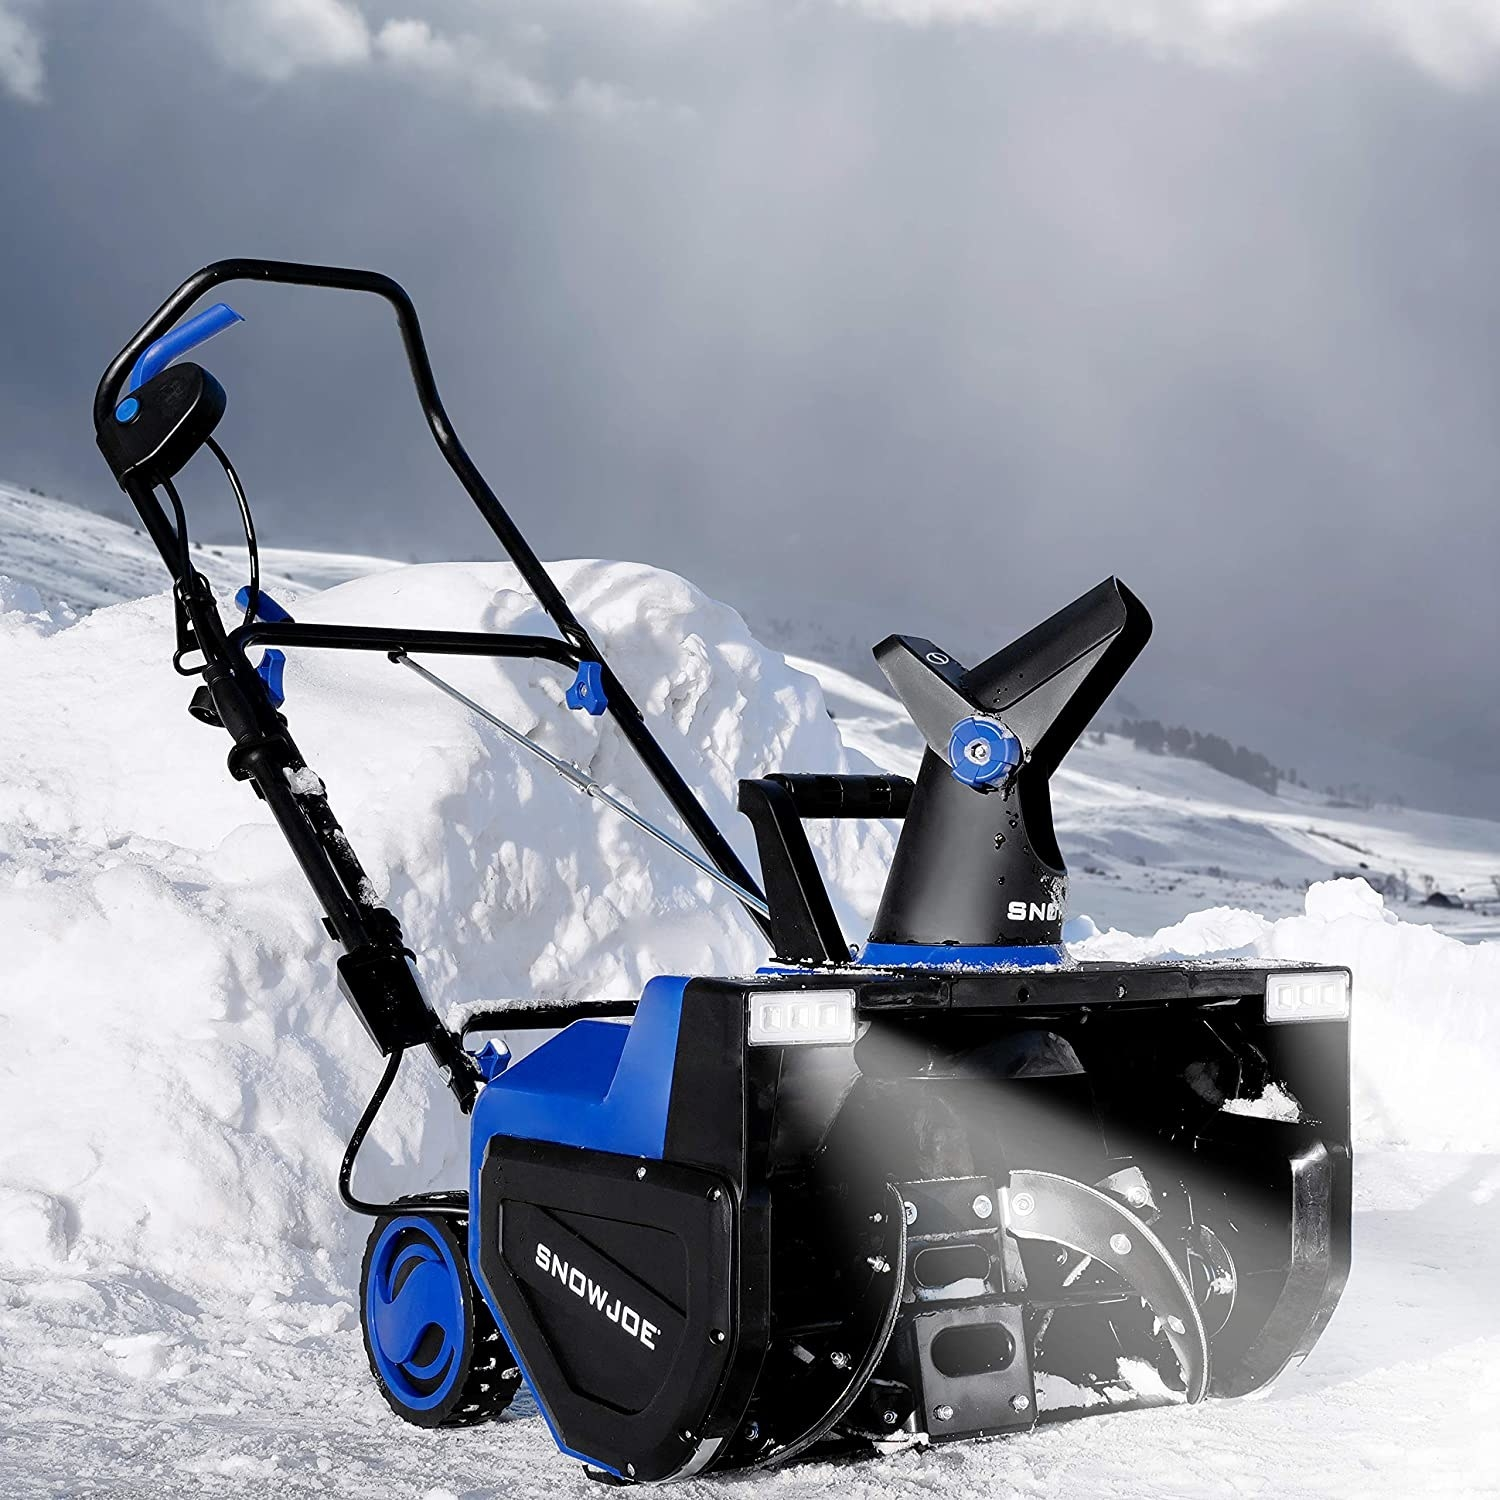 The snow blower in front of a pile of snow